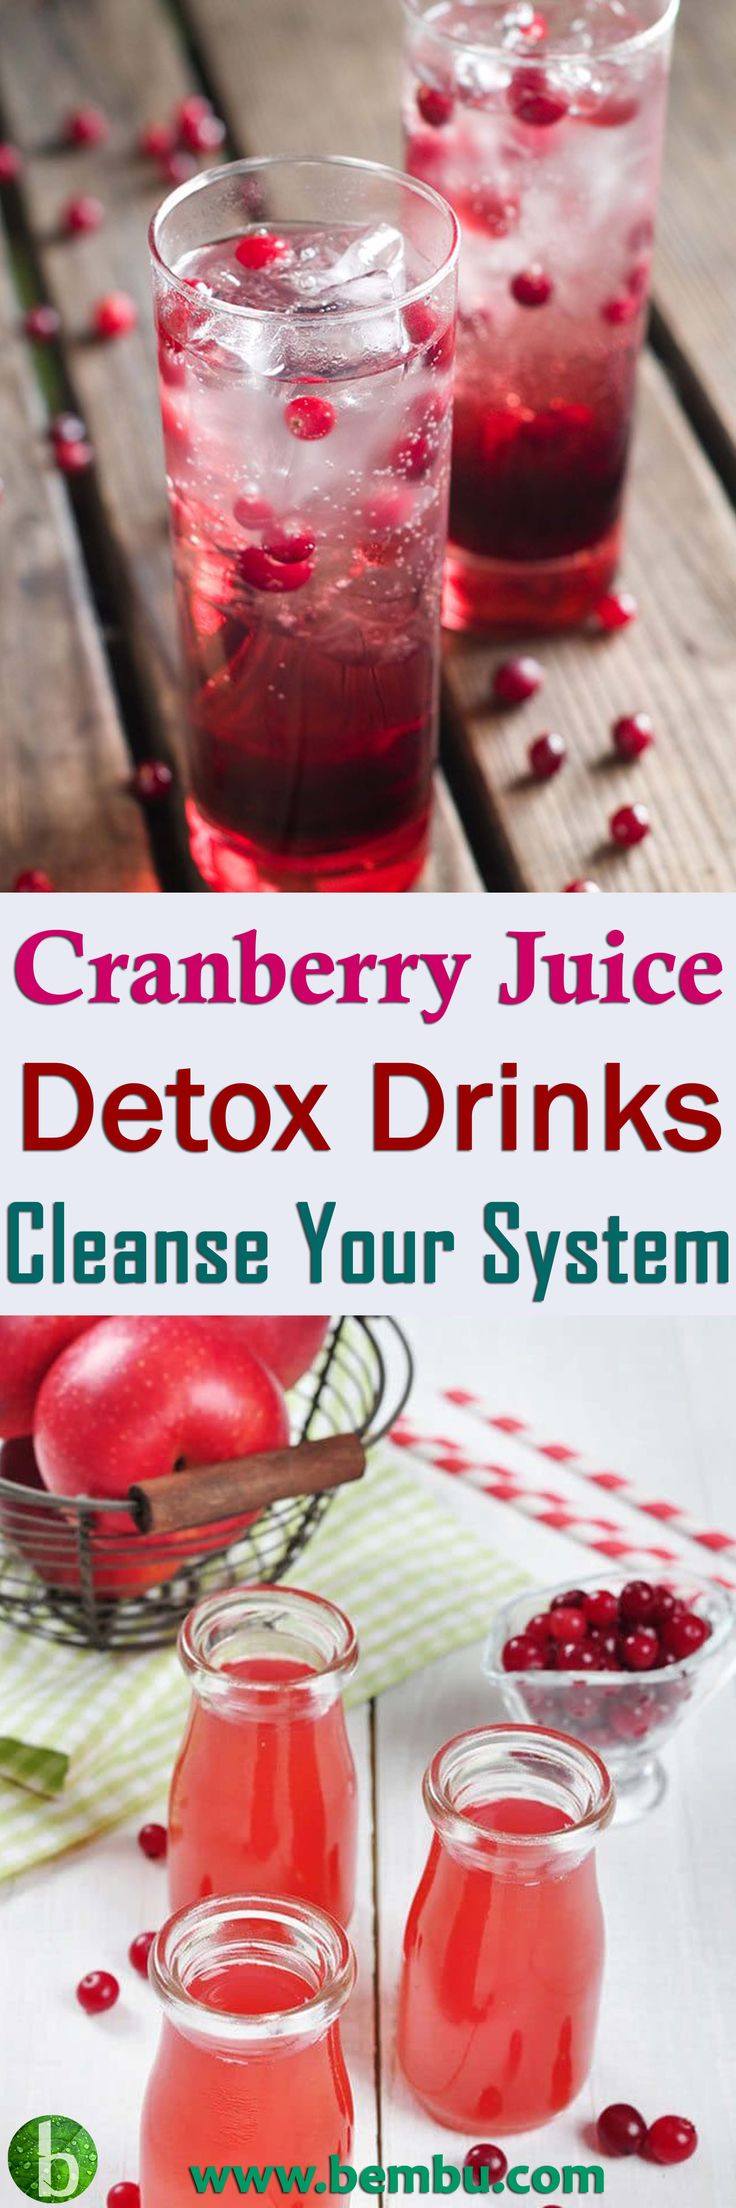 "CranApple Daily Detox Juice You can enjoy this juice daily for its detox benefits, and to also get your ""apple a day"" requirement met. Health Tips │ Health Ideas │Healthy Food │Food │Vitamin │Drinks │Detox │Smoothie │Juice #Health #Ideas #Tips #Vitamin #Healthyfood #Food #Vitamin #Drinks #Detox #Smoothie #Juice"